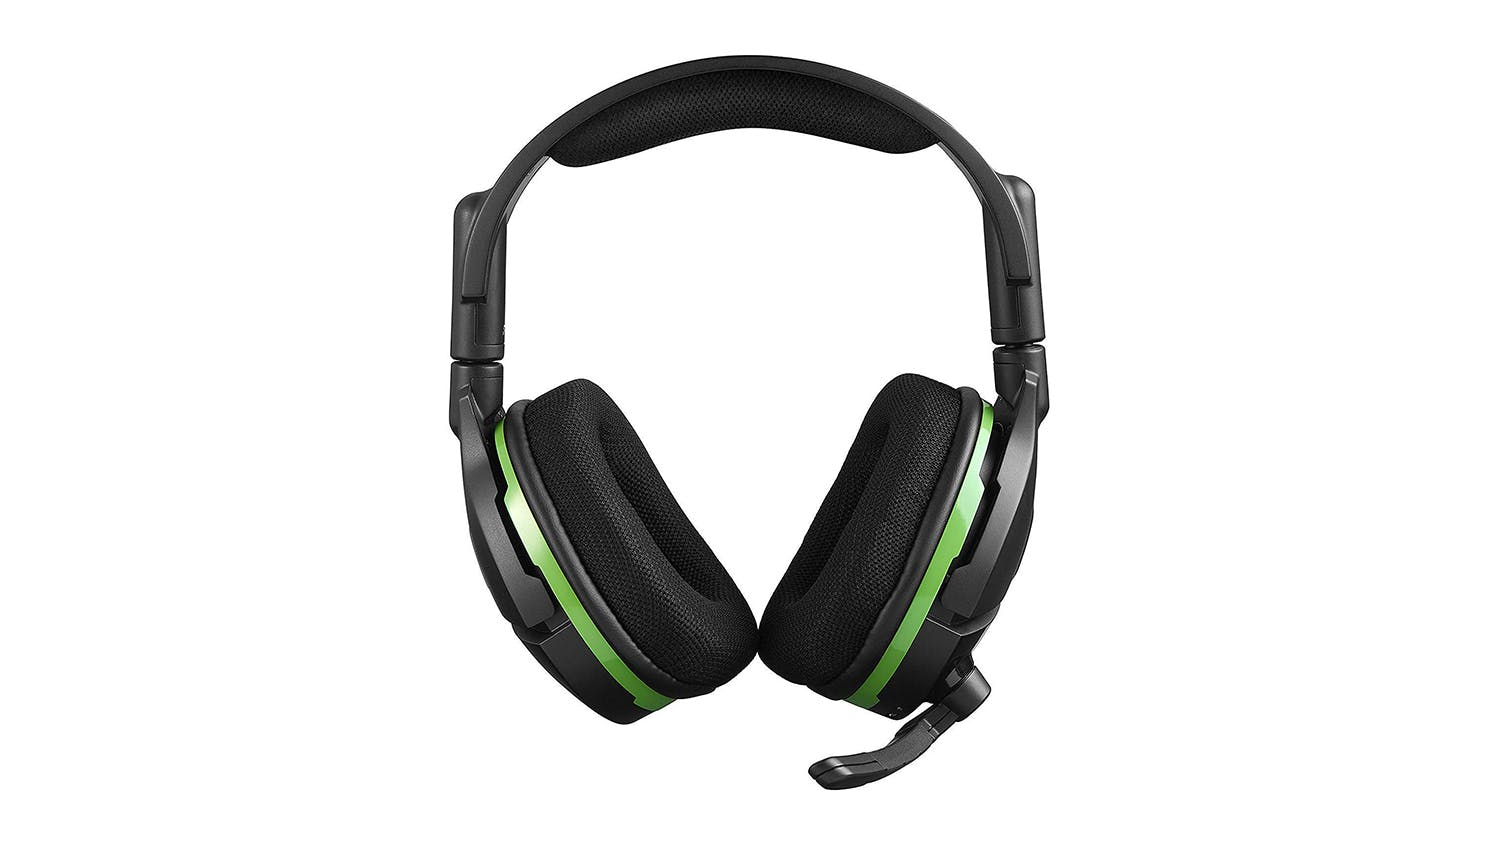 Turtle Beach Stealth 600 Wireless Gaming Headset for Xbox One